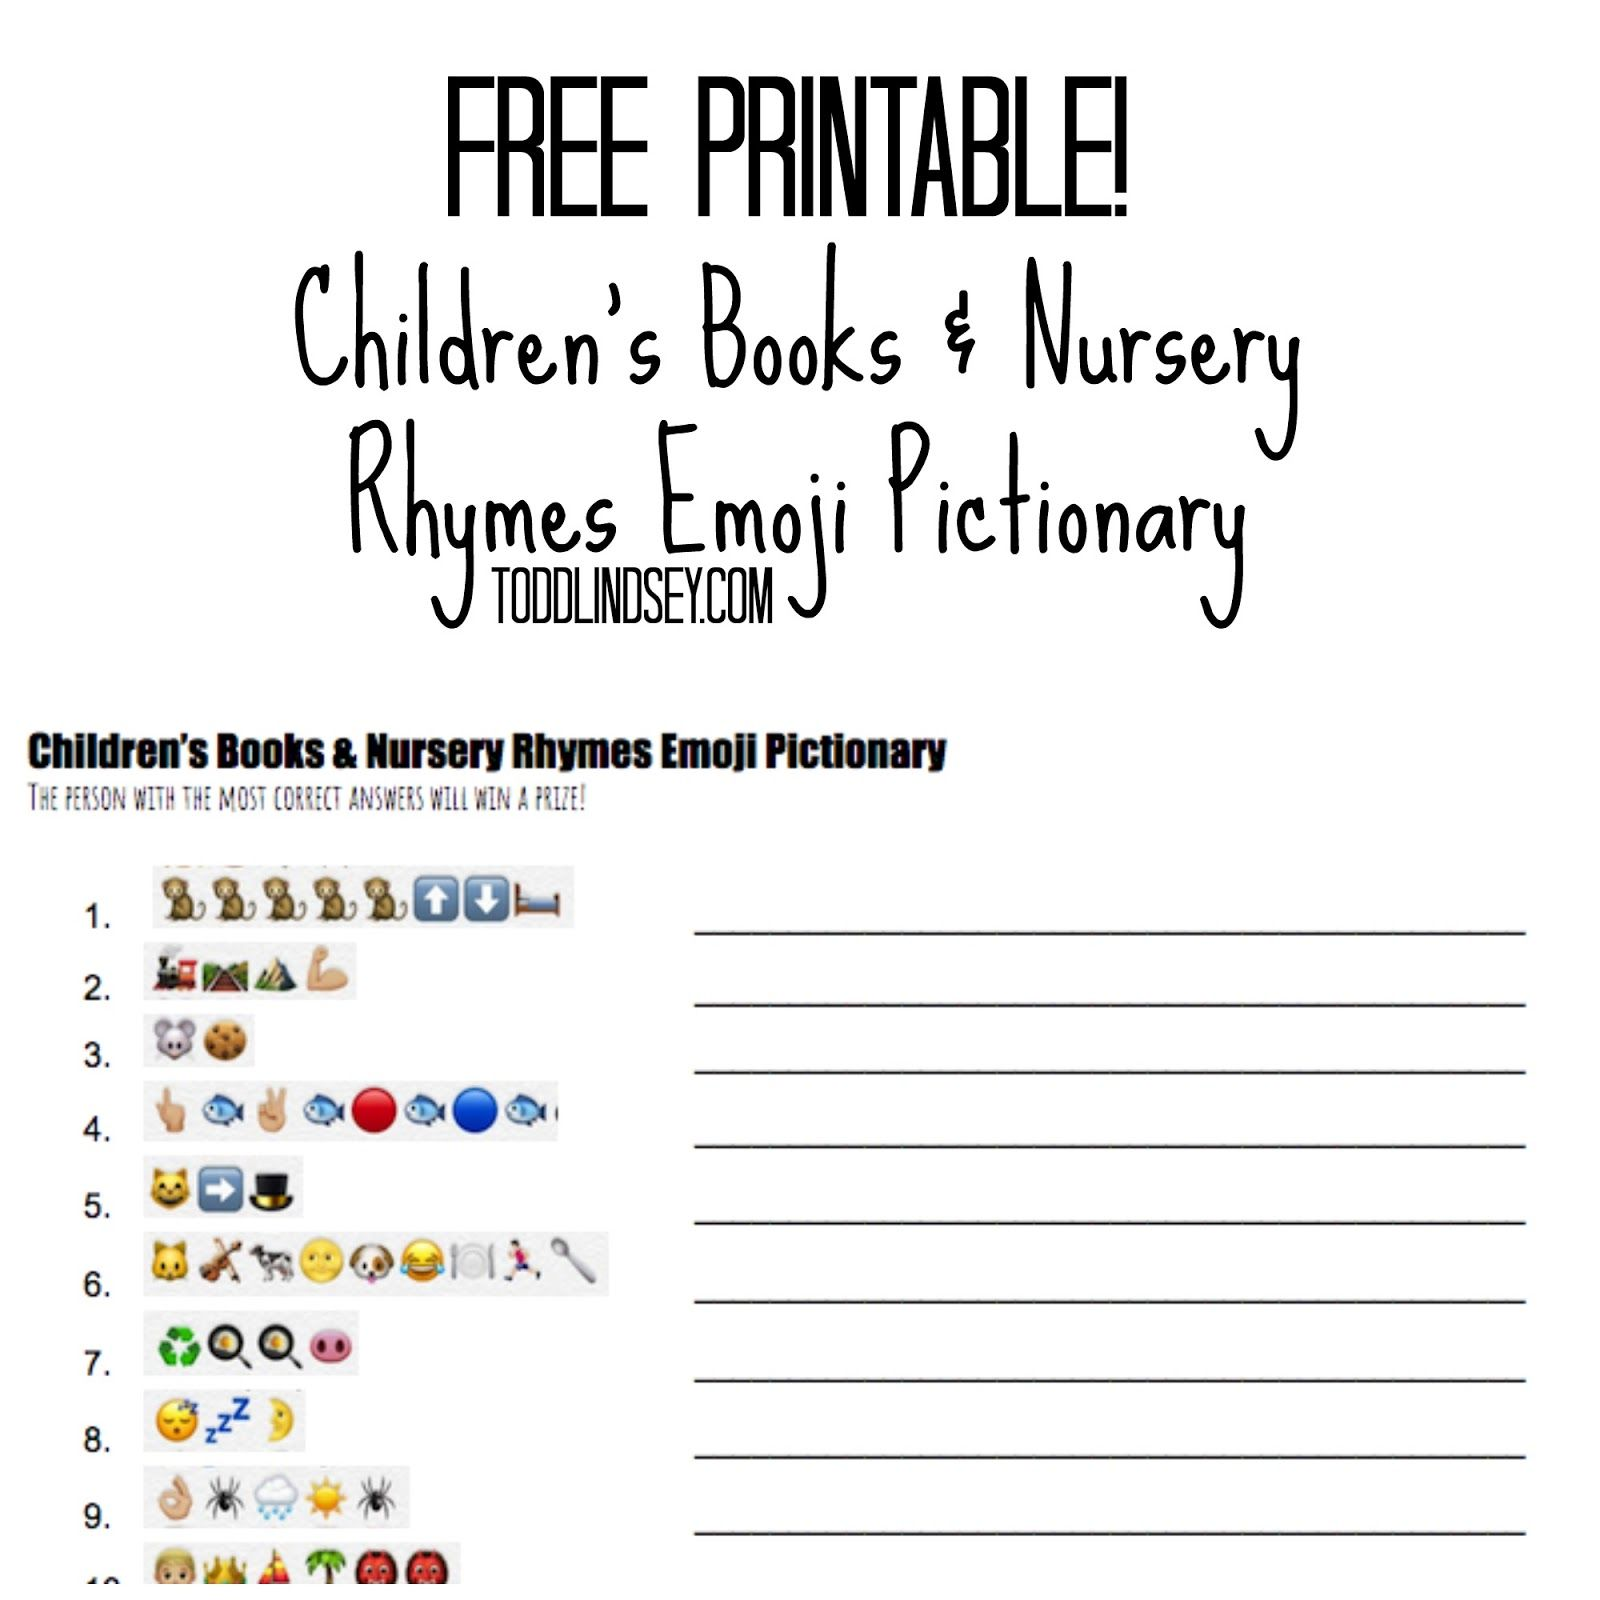 Free Printable Children S Books Amp Nursery Rhymes Emoji Pictionary